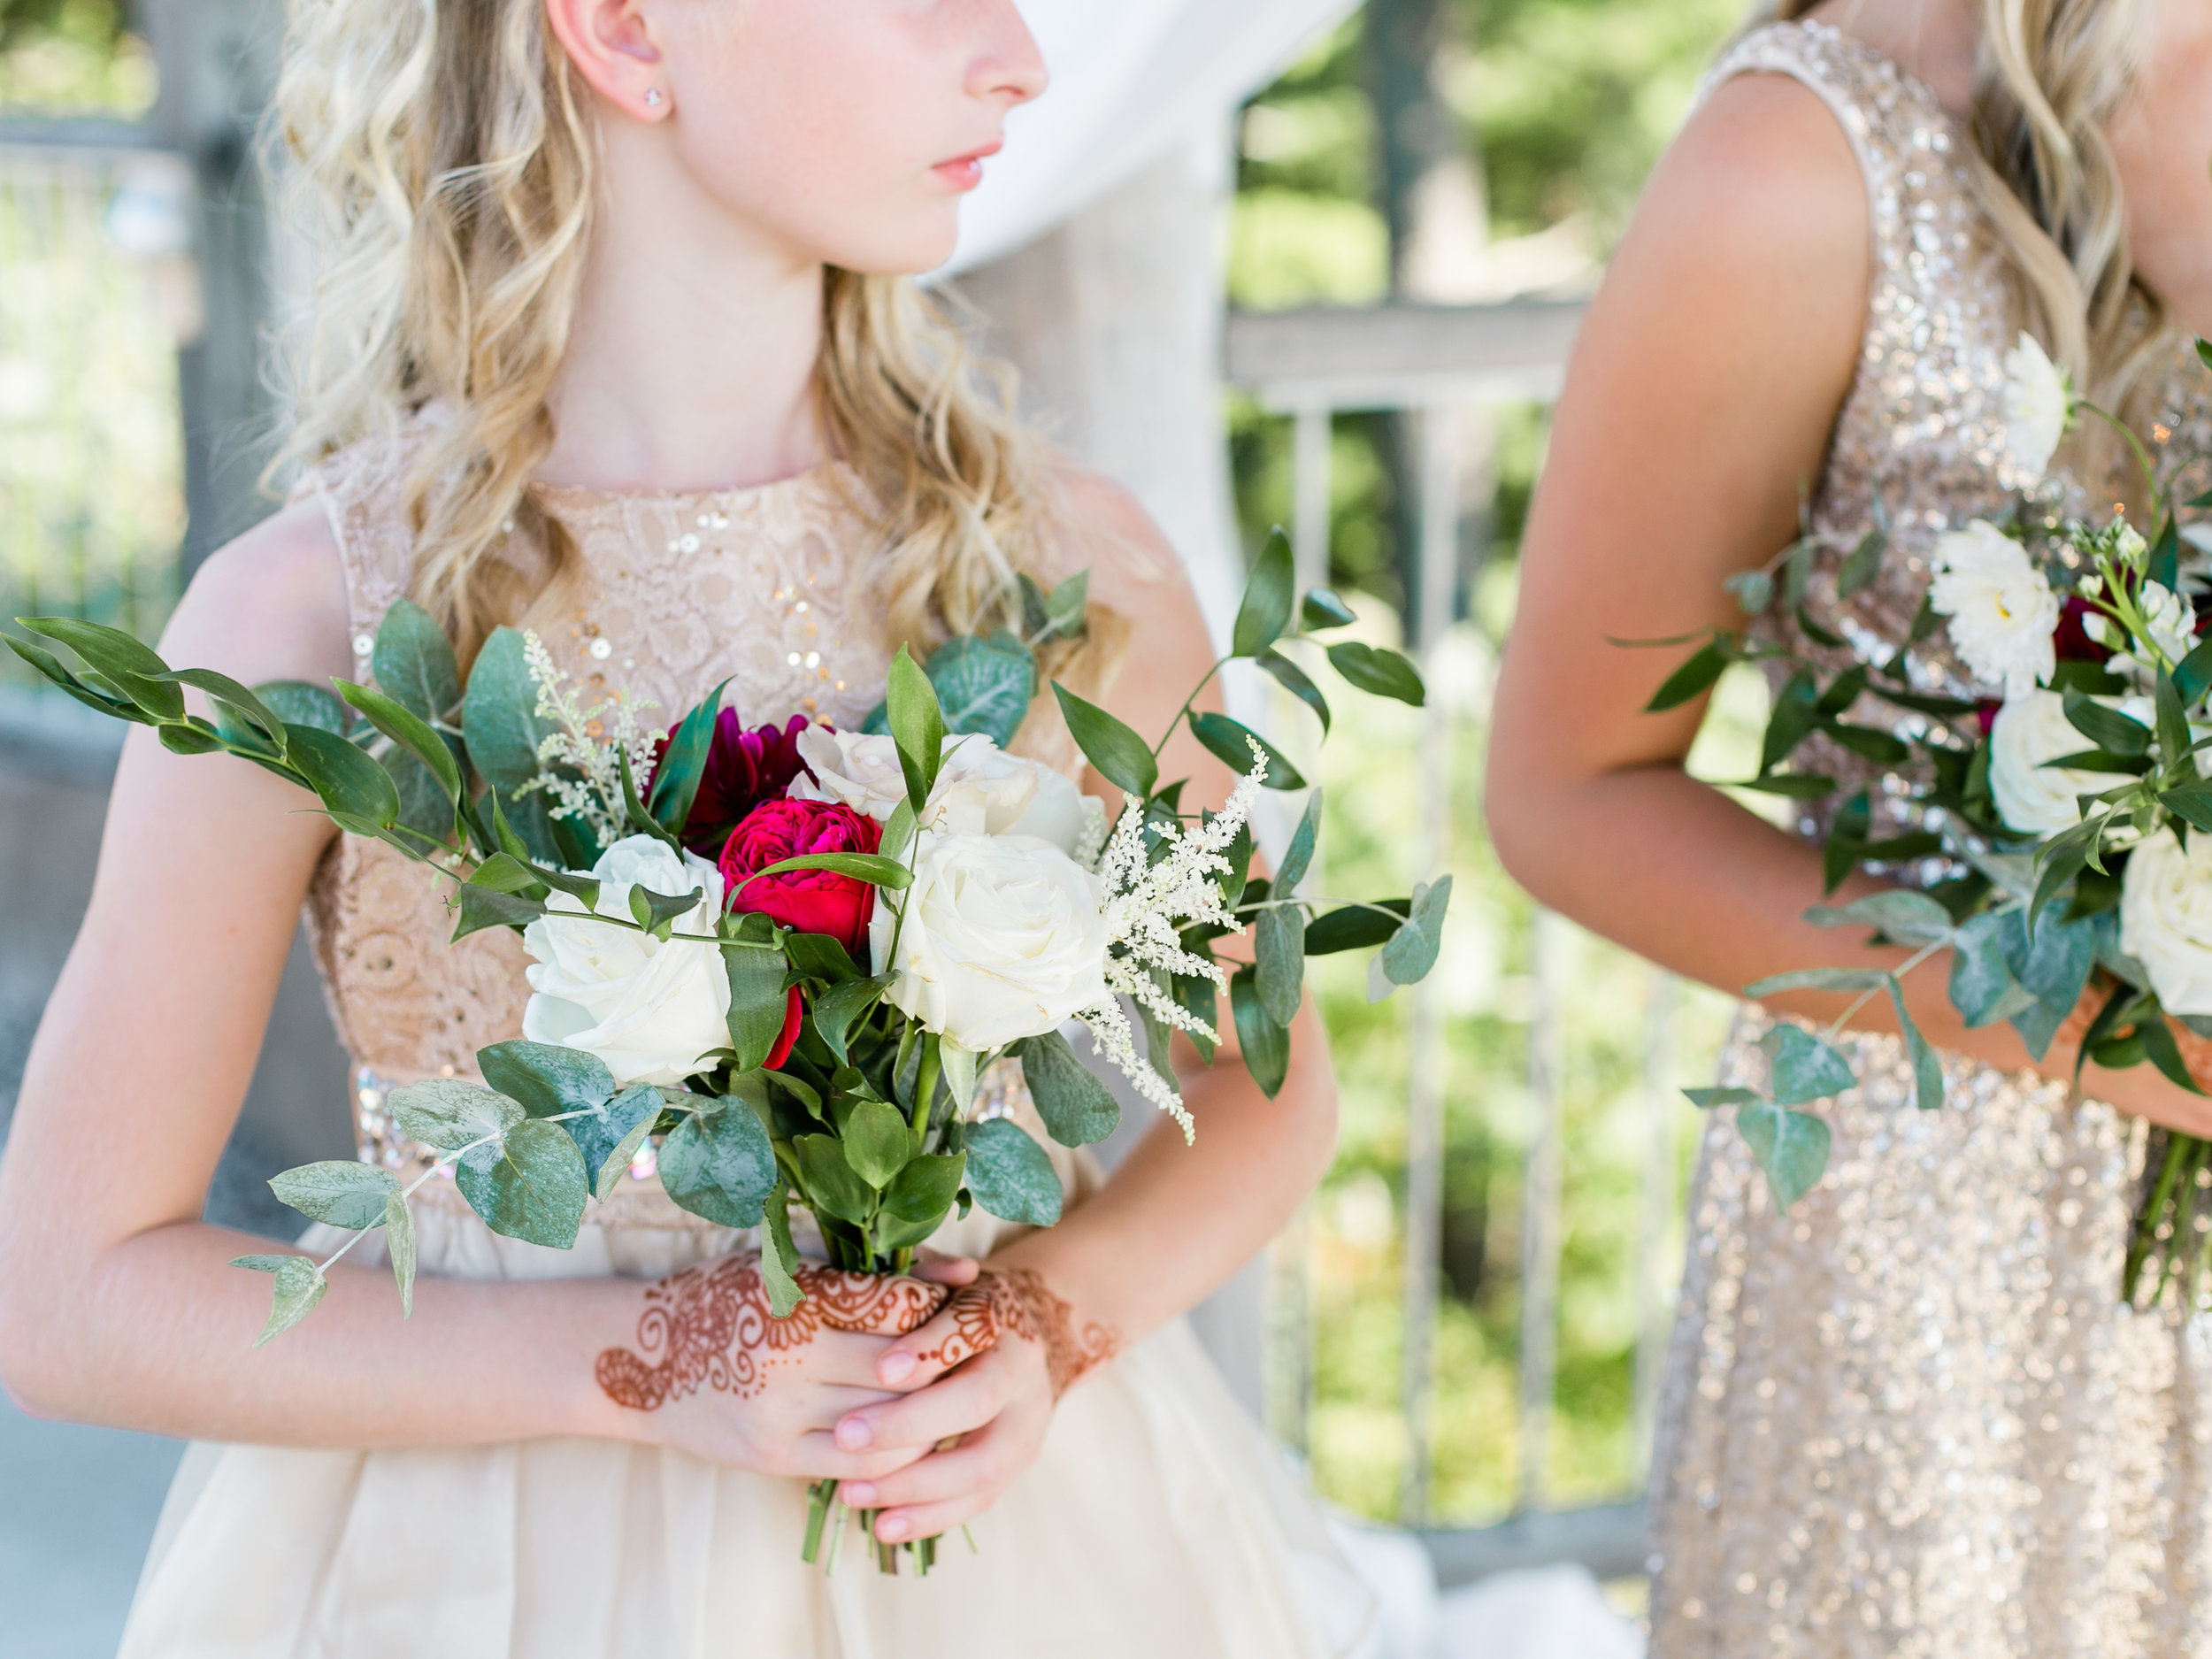 LeBelvedere_MountainTopWedding_StephanieMasonPhotography-167.jpg